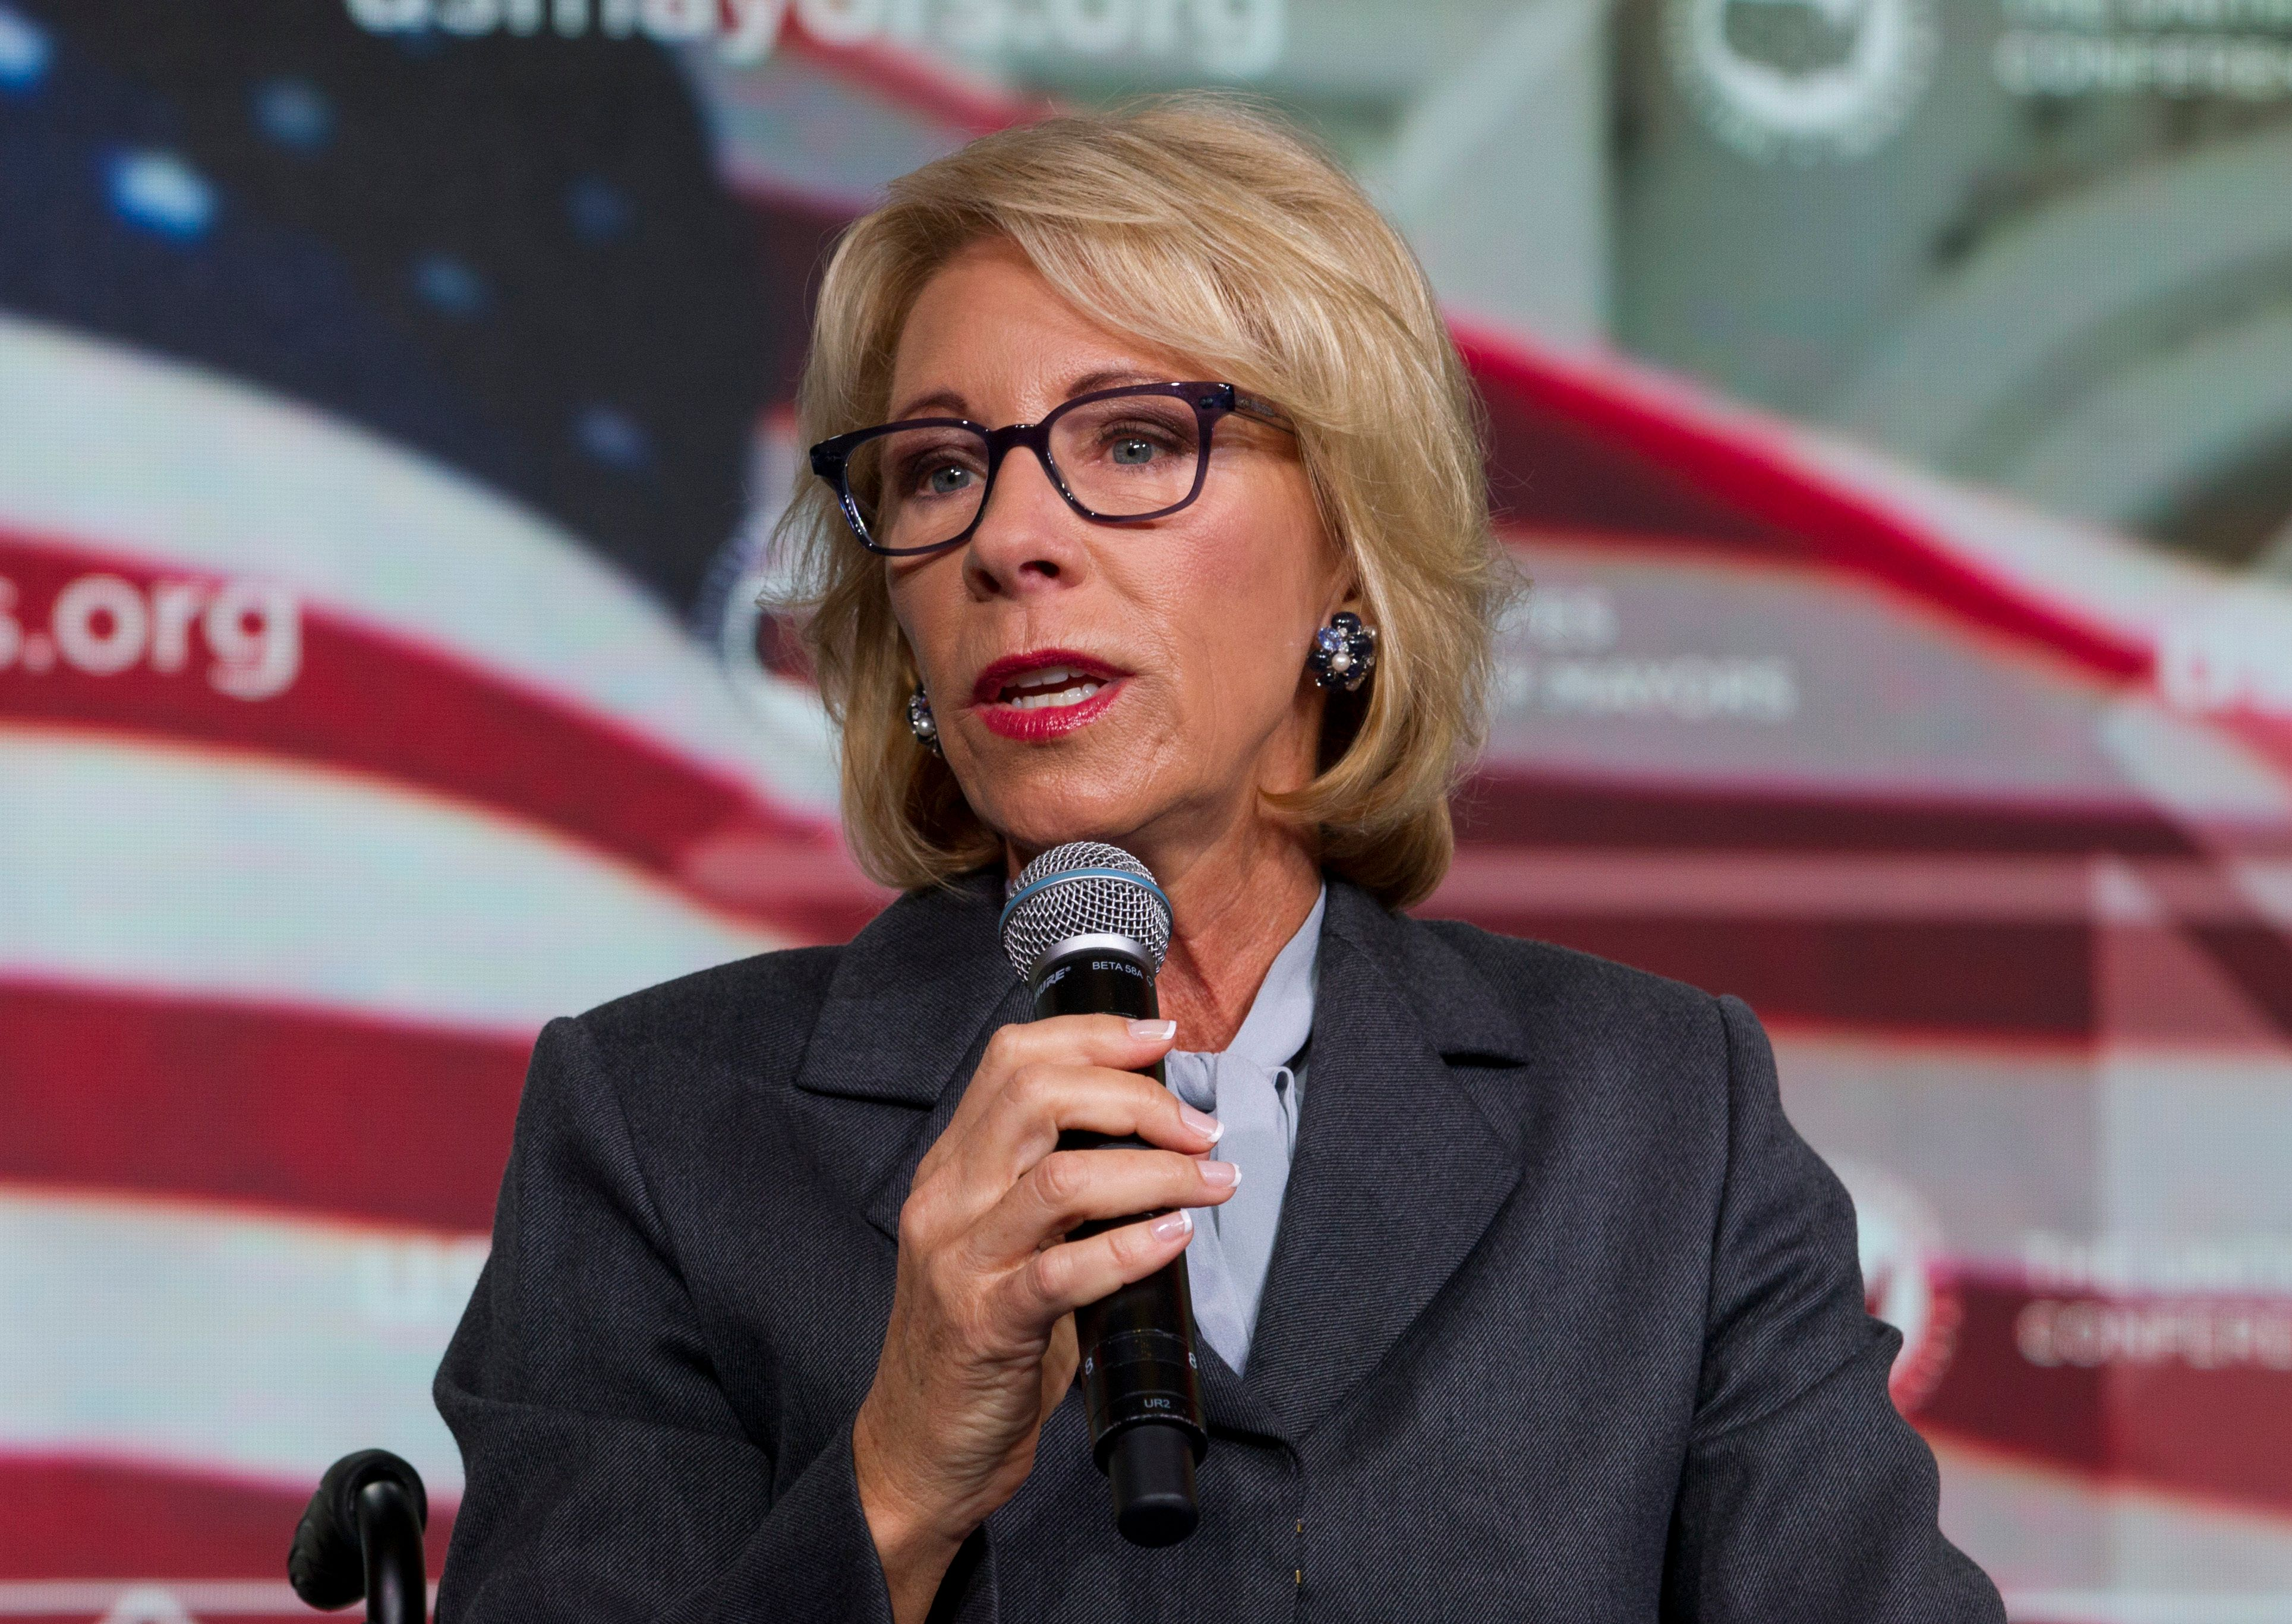 Education Secretary Betsy DeVos addressing the U.S. Conference of Mayors in January.